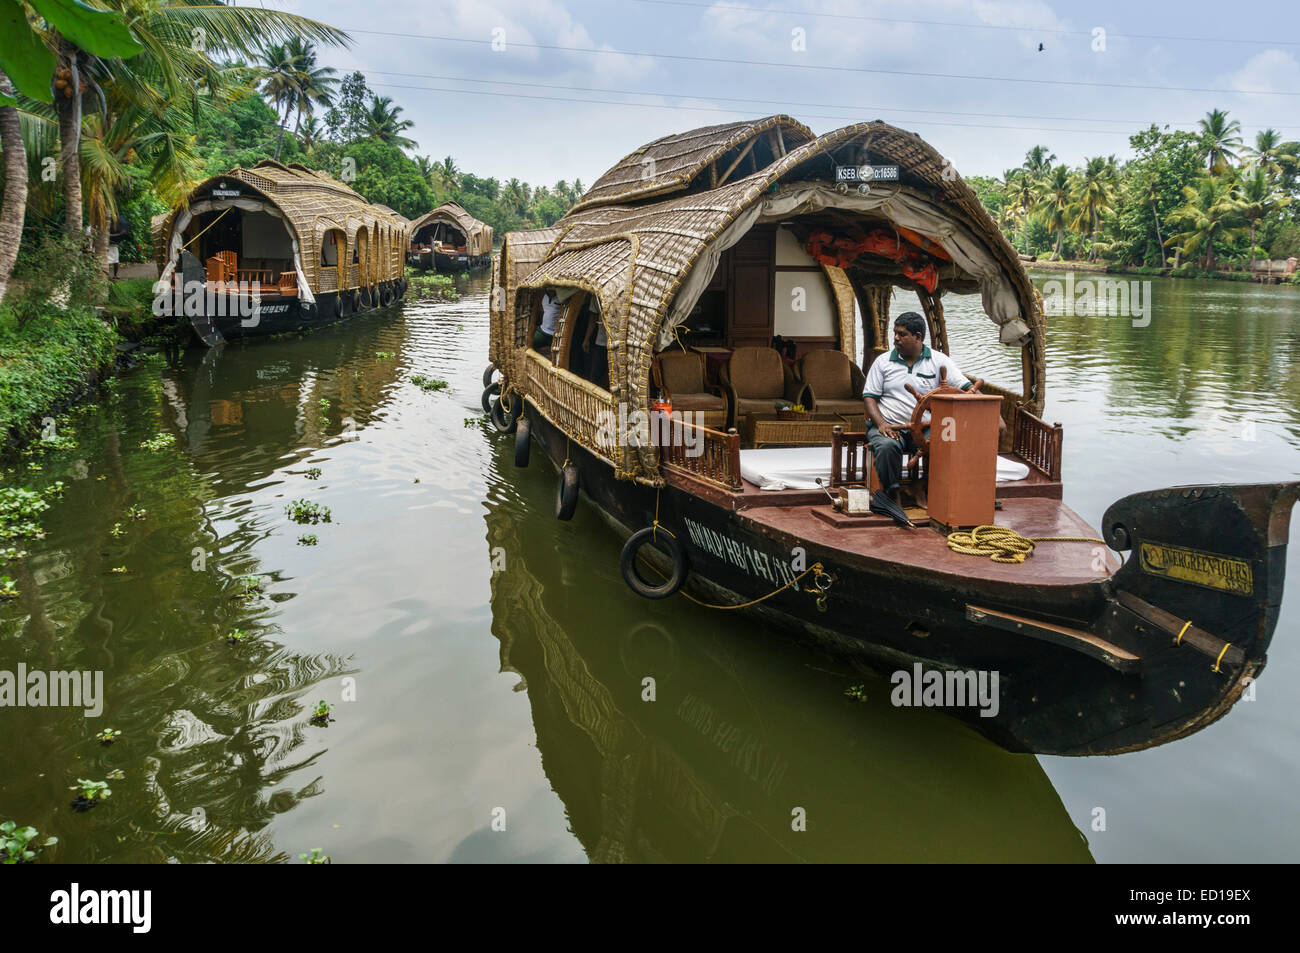 Kerala, India - Nedumudy. Boarding for houseboat trips. - Stock Image